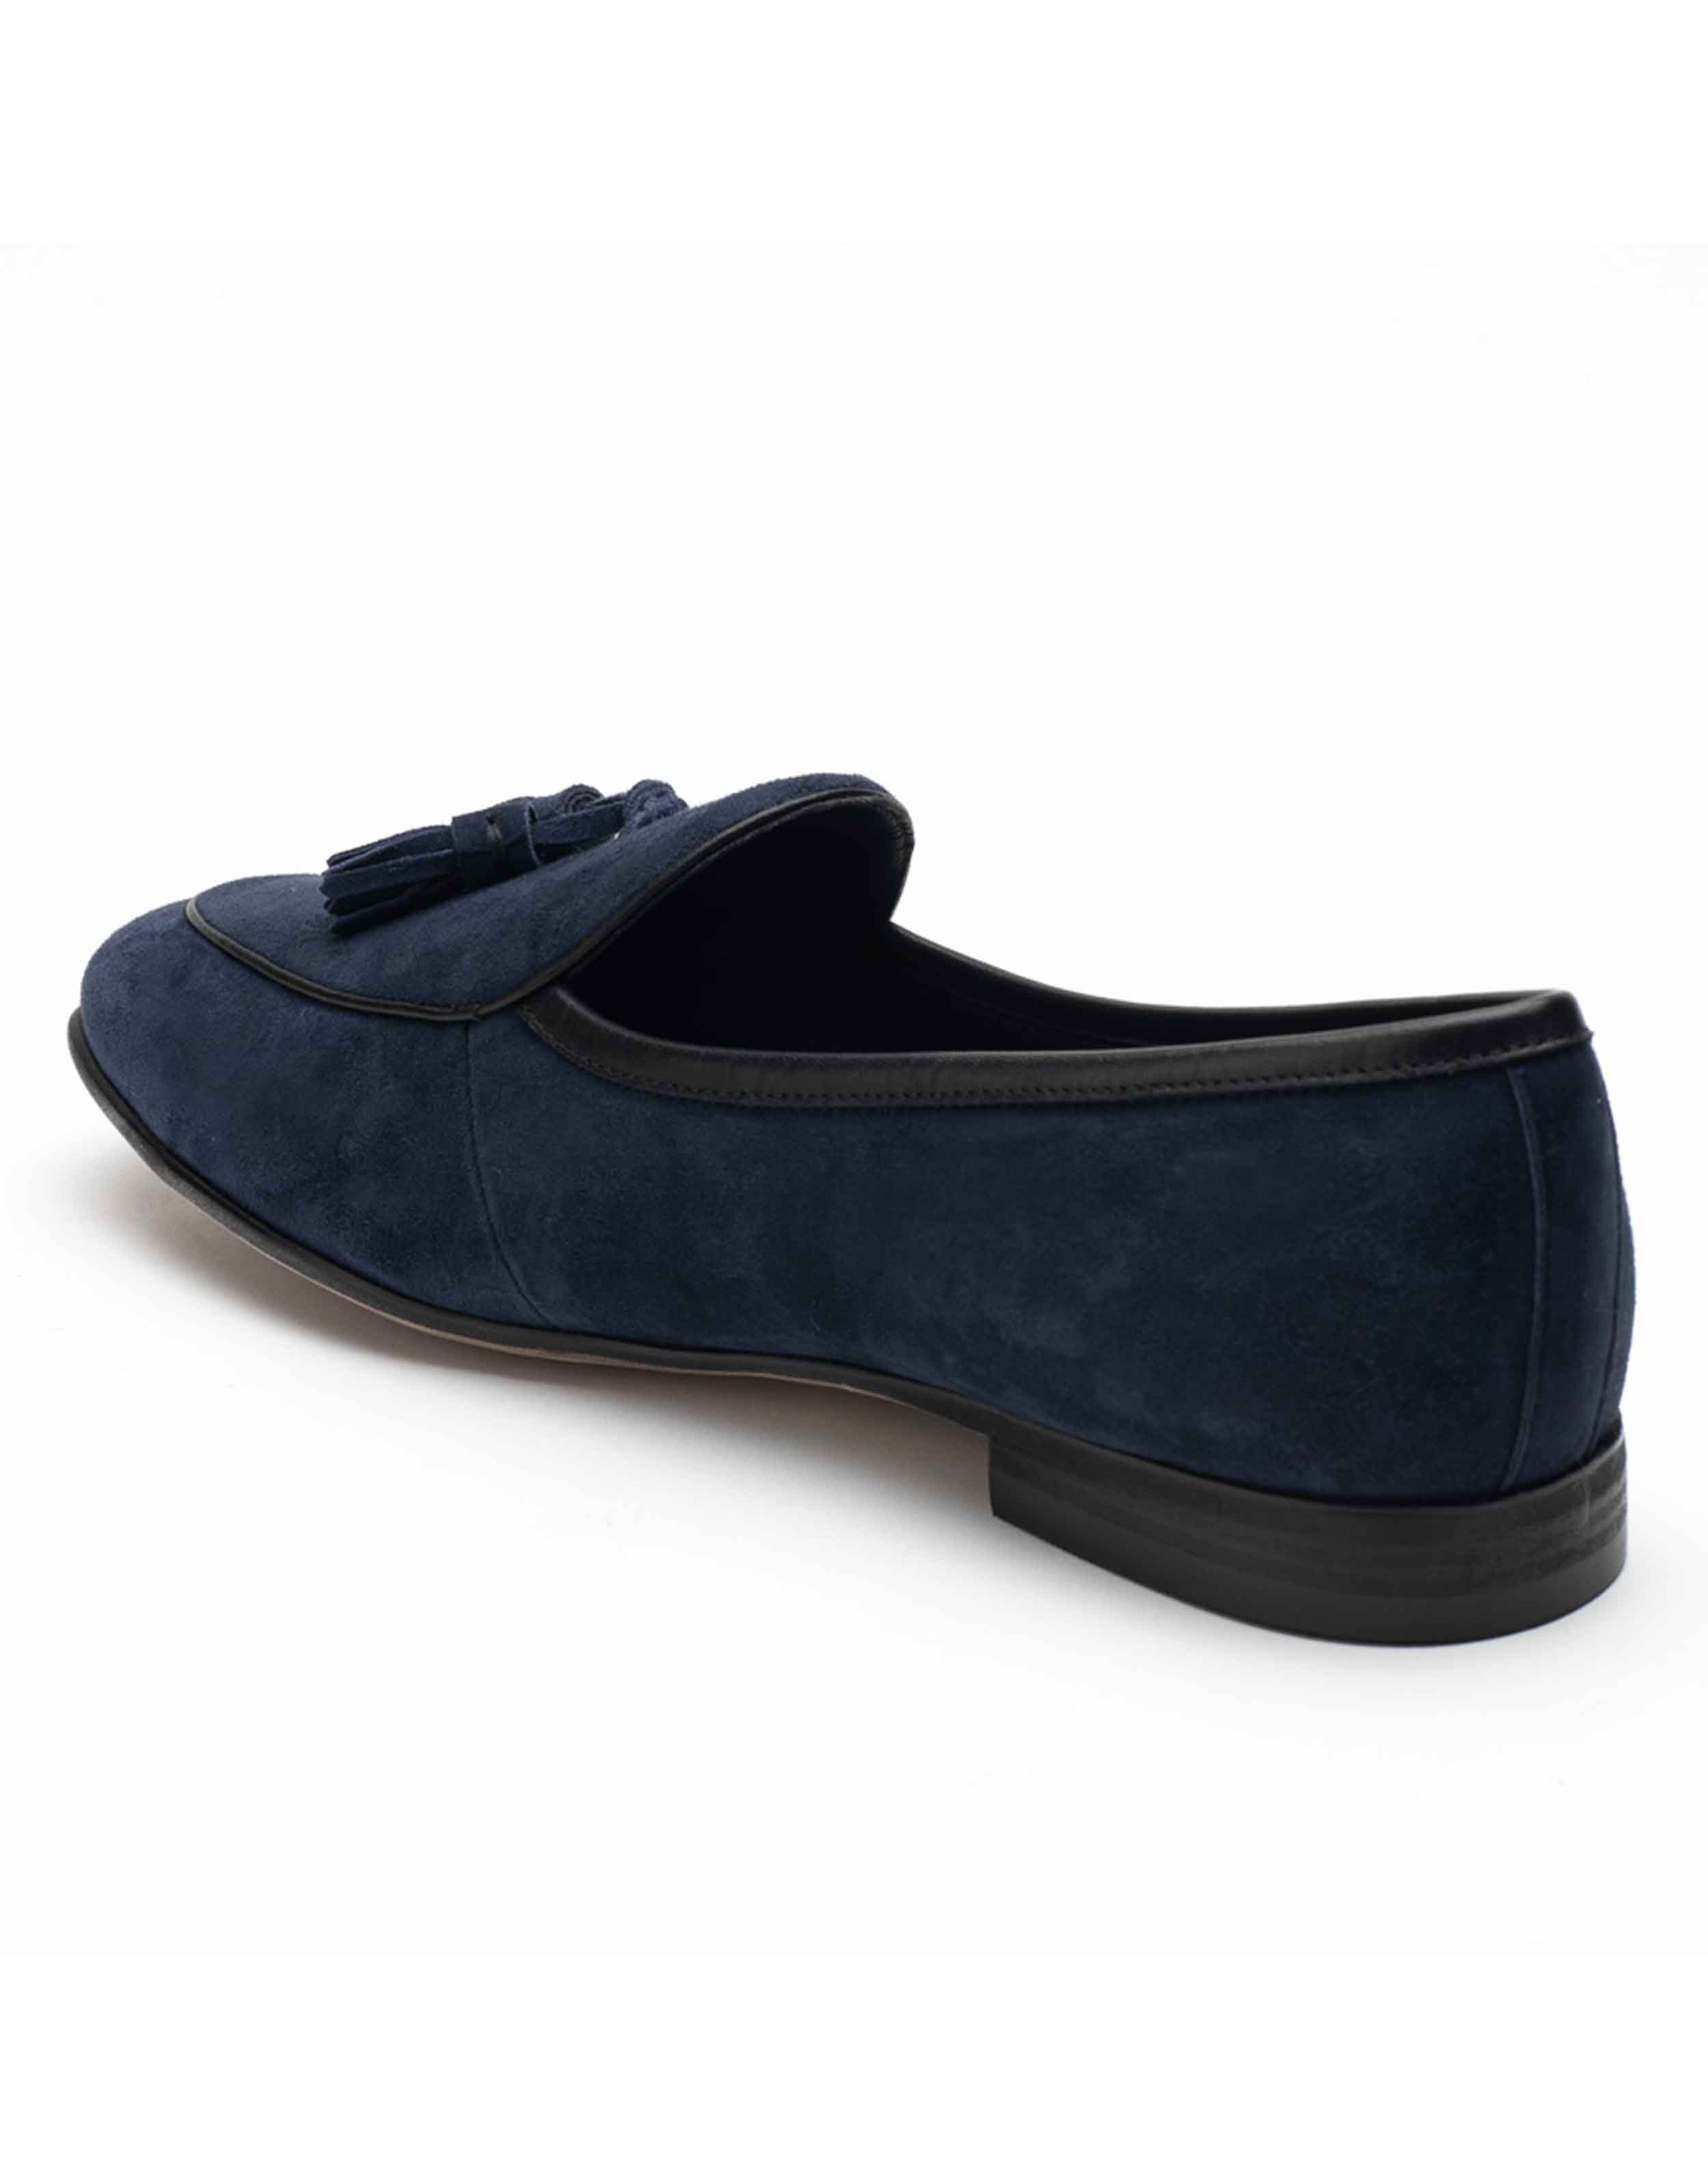 Heel _ Buckle London-HBDARM074-Sliced Navy Suede Loafers-Navy-3